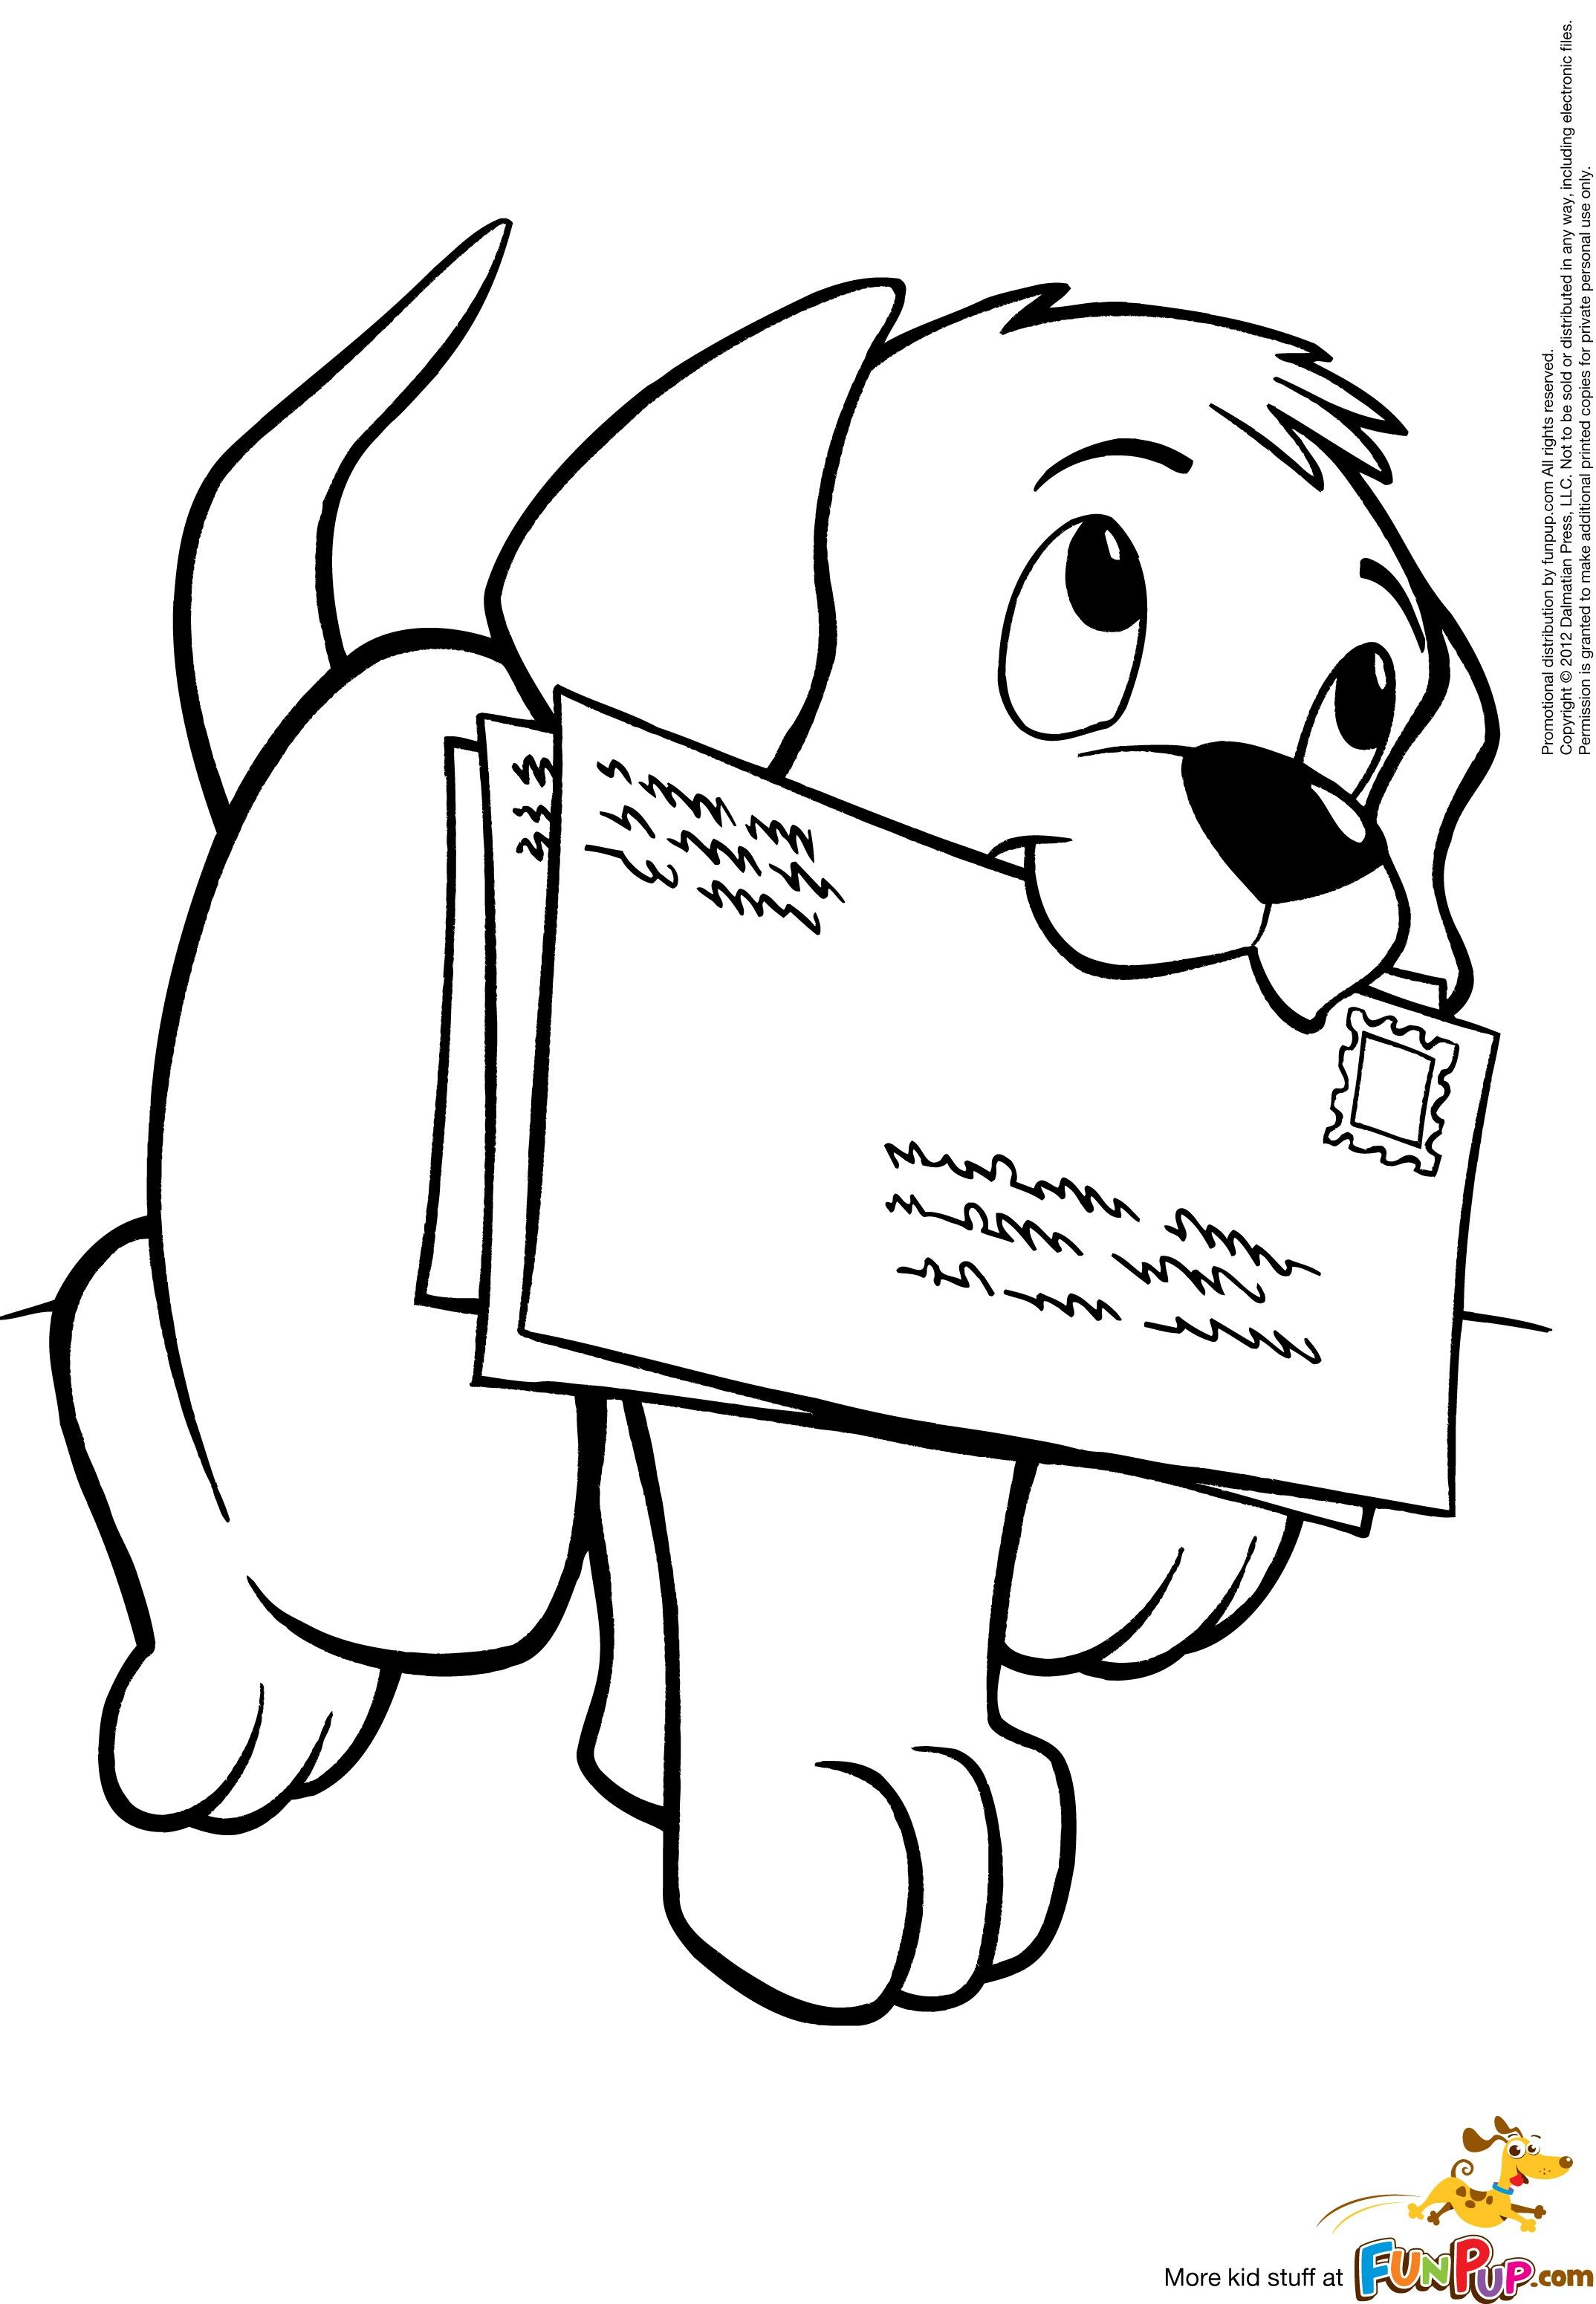 2148x3101 Free Printable Coloring Pages Printables Free